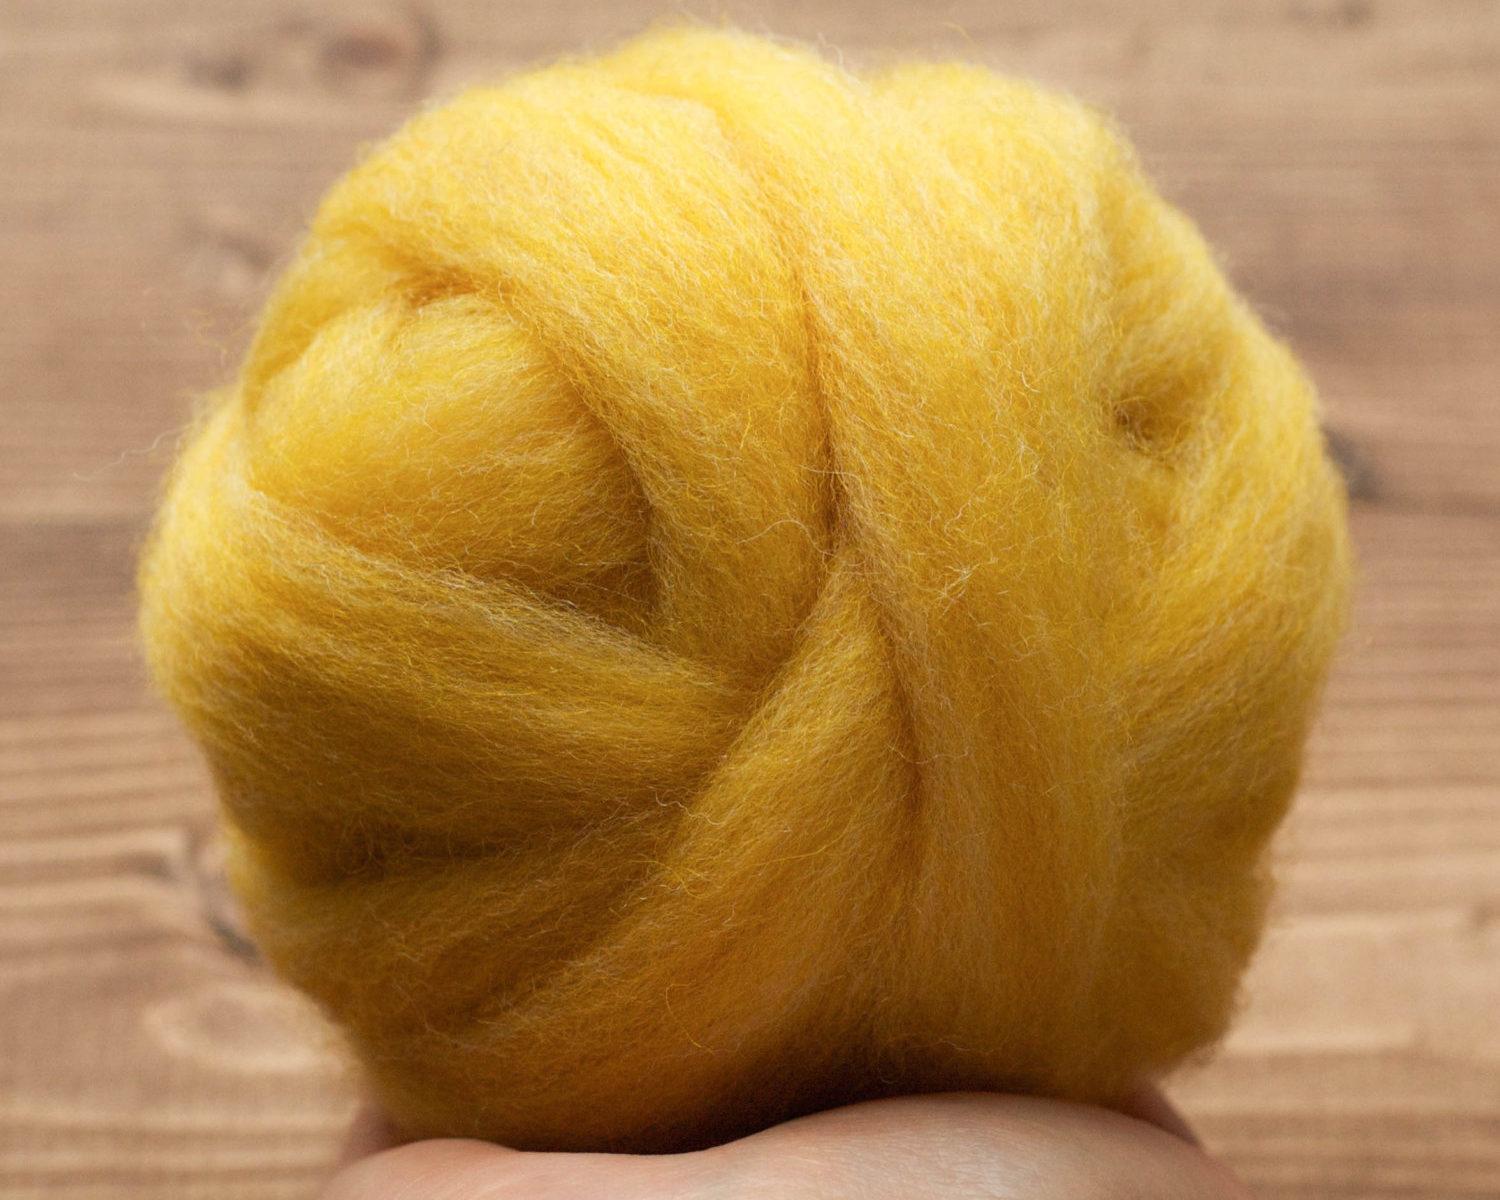 Forsythia Yellow Wool Roving for Needle Felting, Wet Felting, Spinning, Mellow Yellow, Fiber Arts Supplies